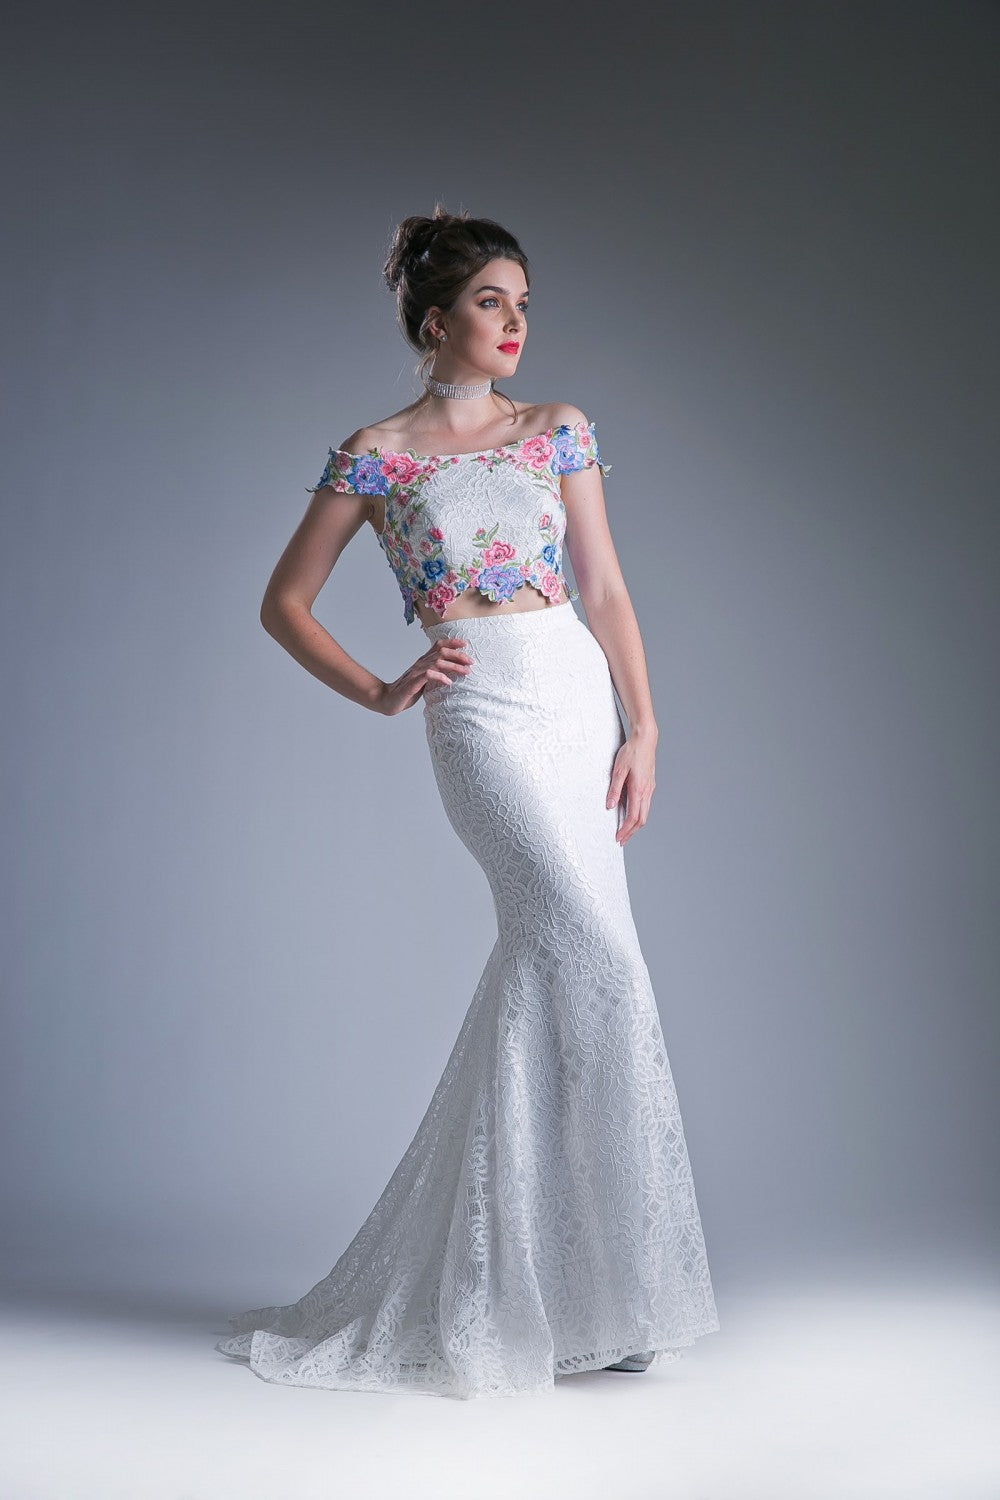 Two Piece Off The Shoulder Fitted Dress With Embroidered Floral Appliques And Lace Detailed Skirt